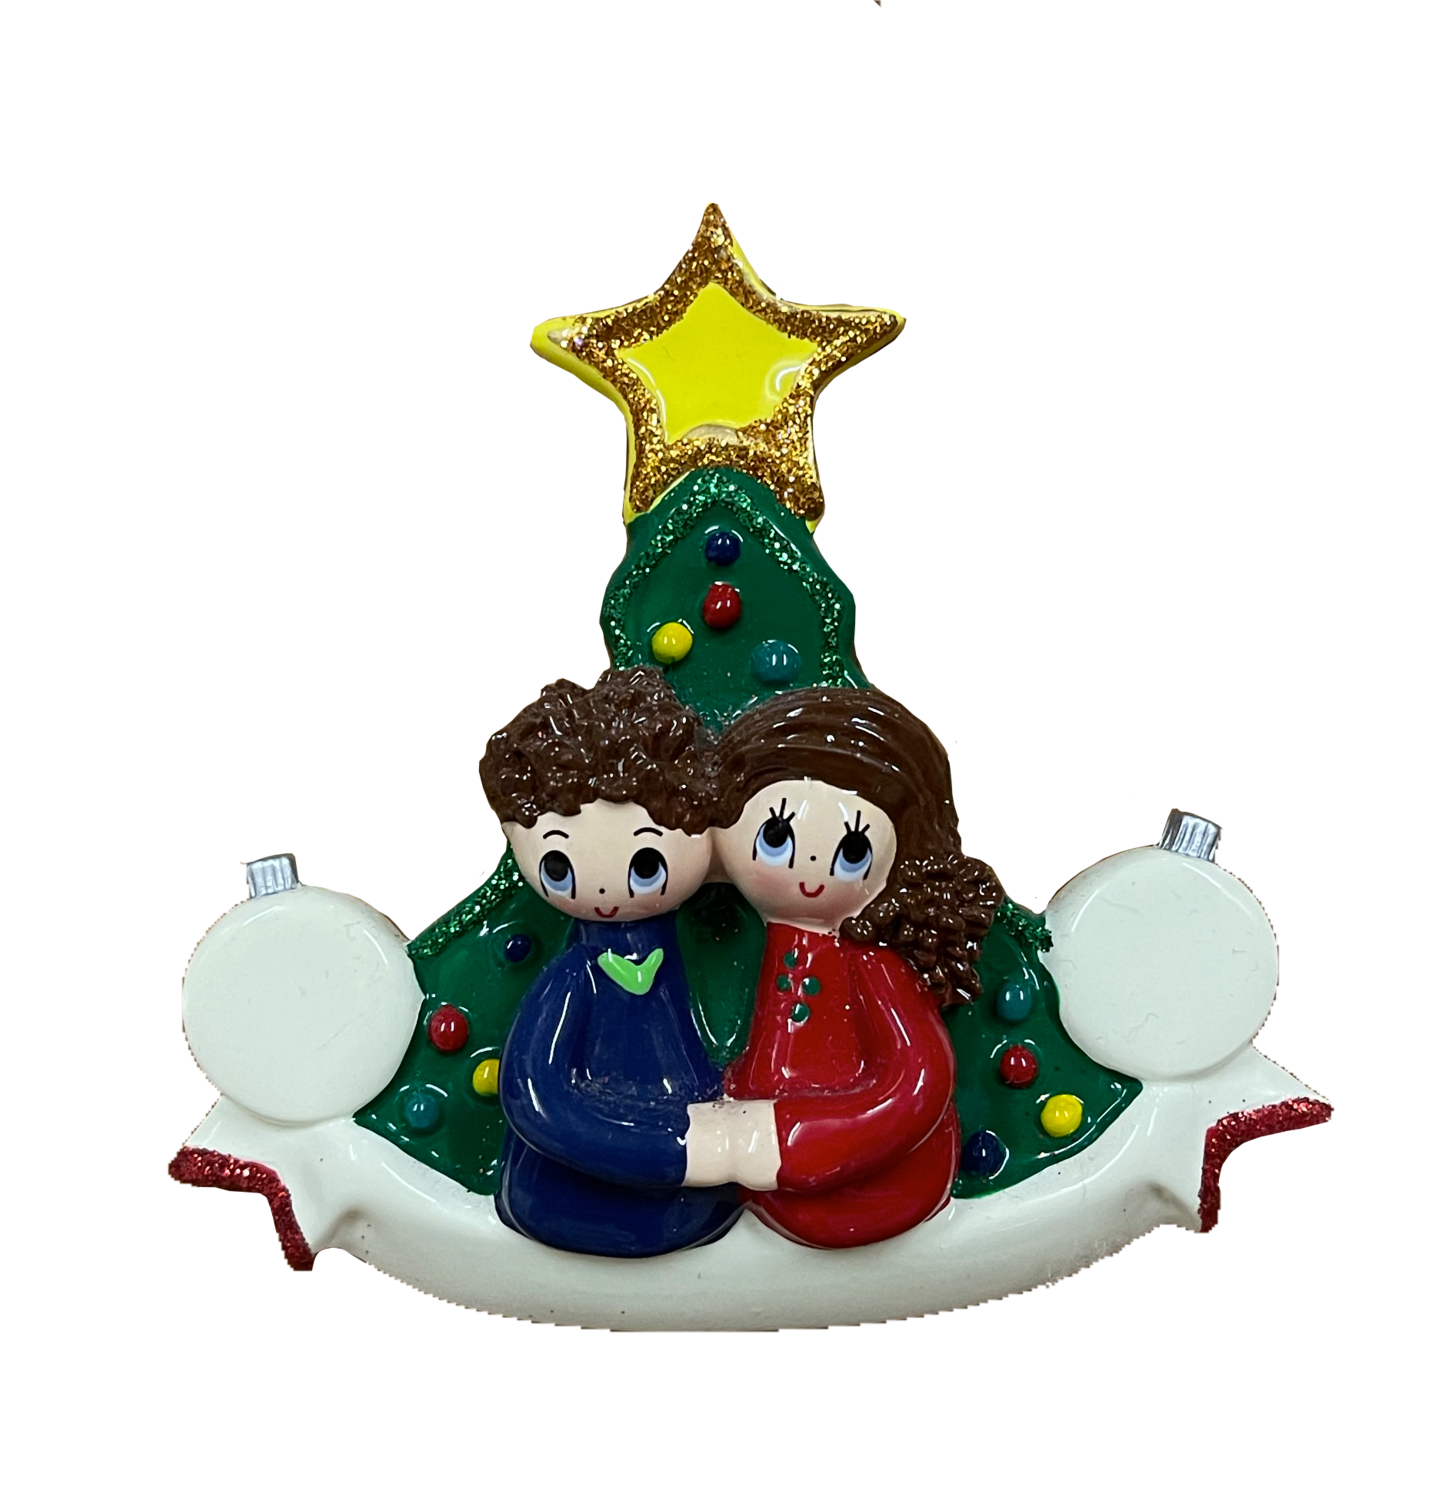 Our 1st Christmas with bubbles couple  Ornament